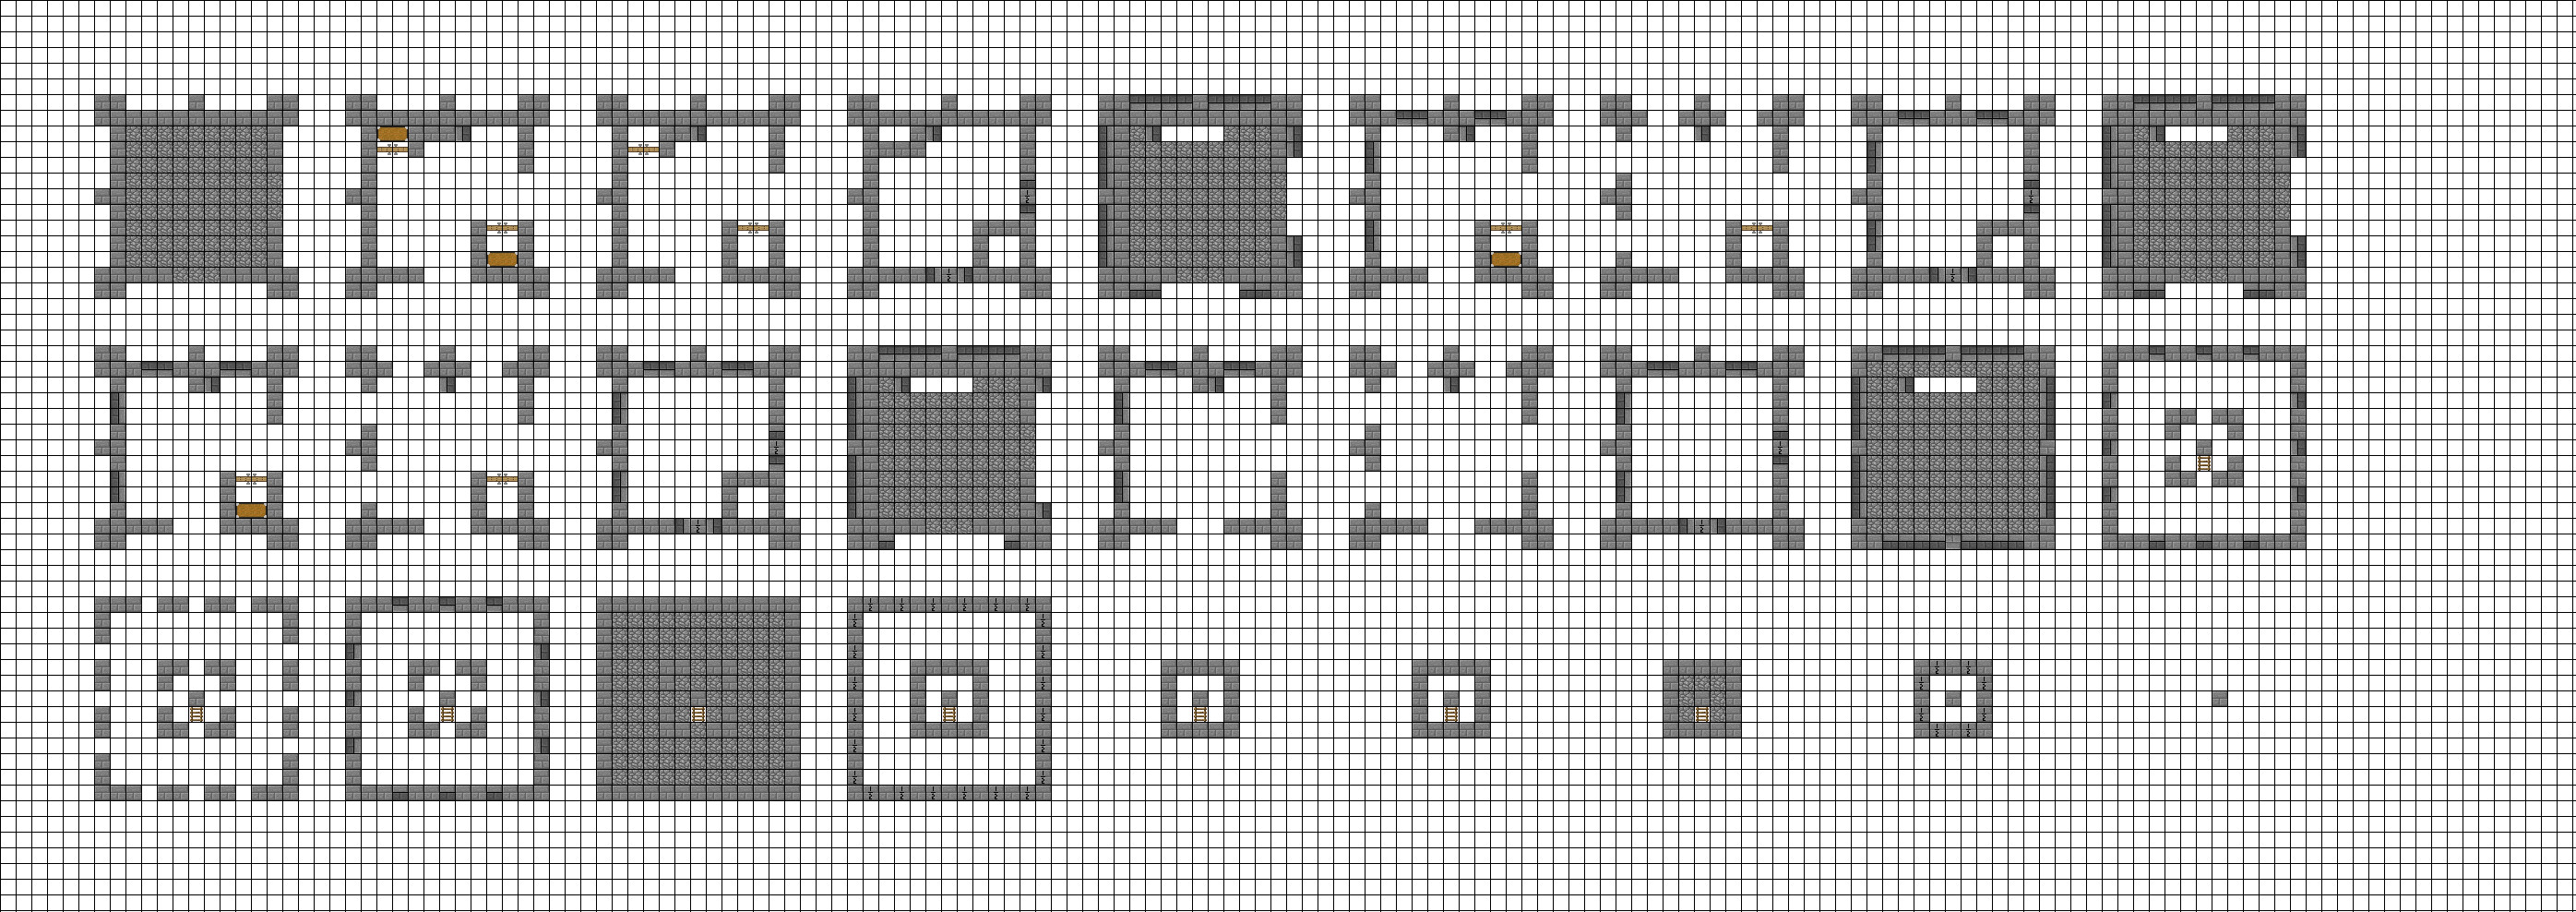 Npc village buildings by coltcoyote on deviantart apps directories - More Castle Stuff Corner Tower Idea Wip By Coltcoyote Minecraft Small Pirate Warship 1 Wip